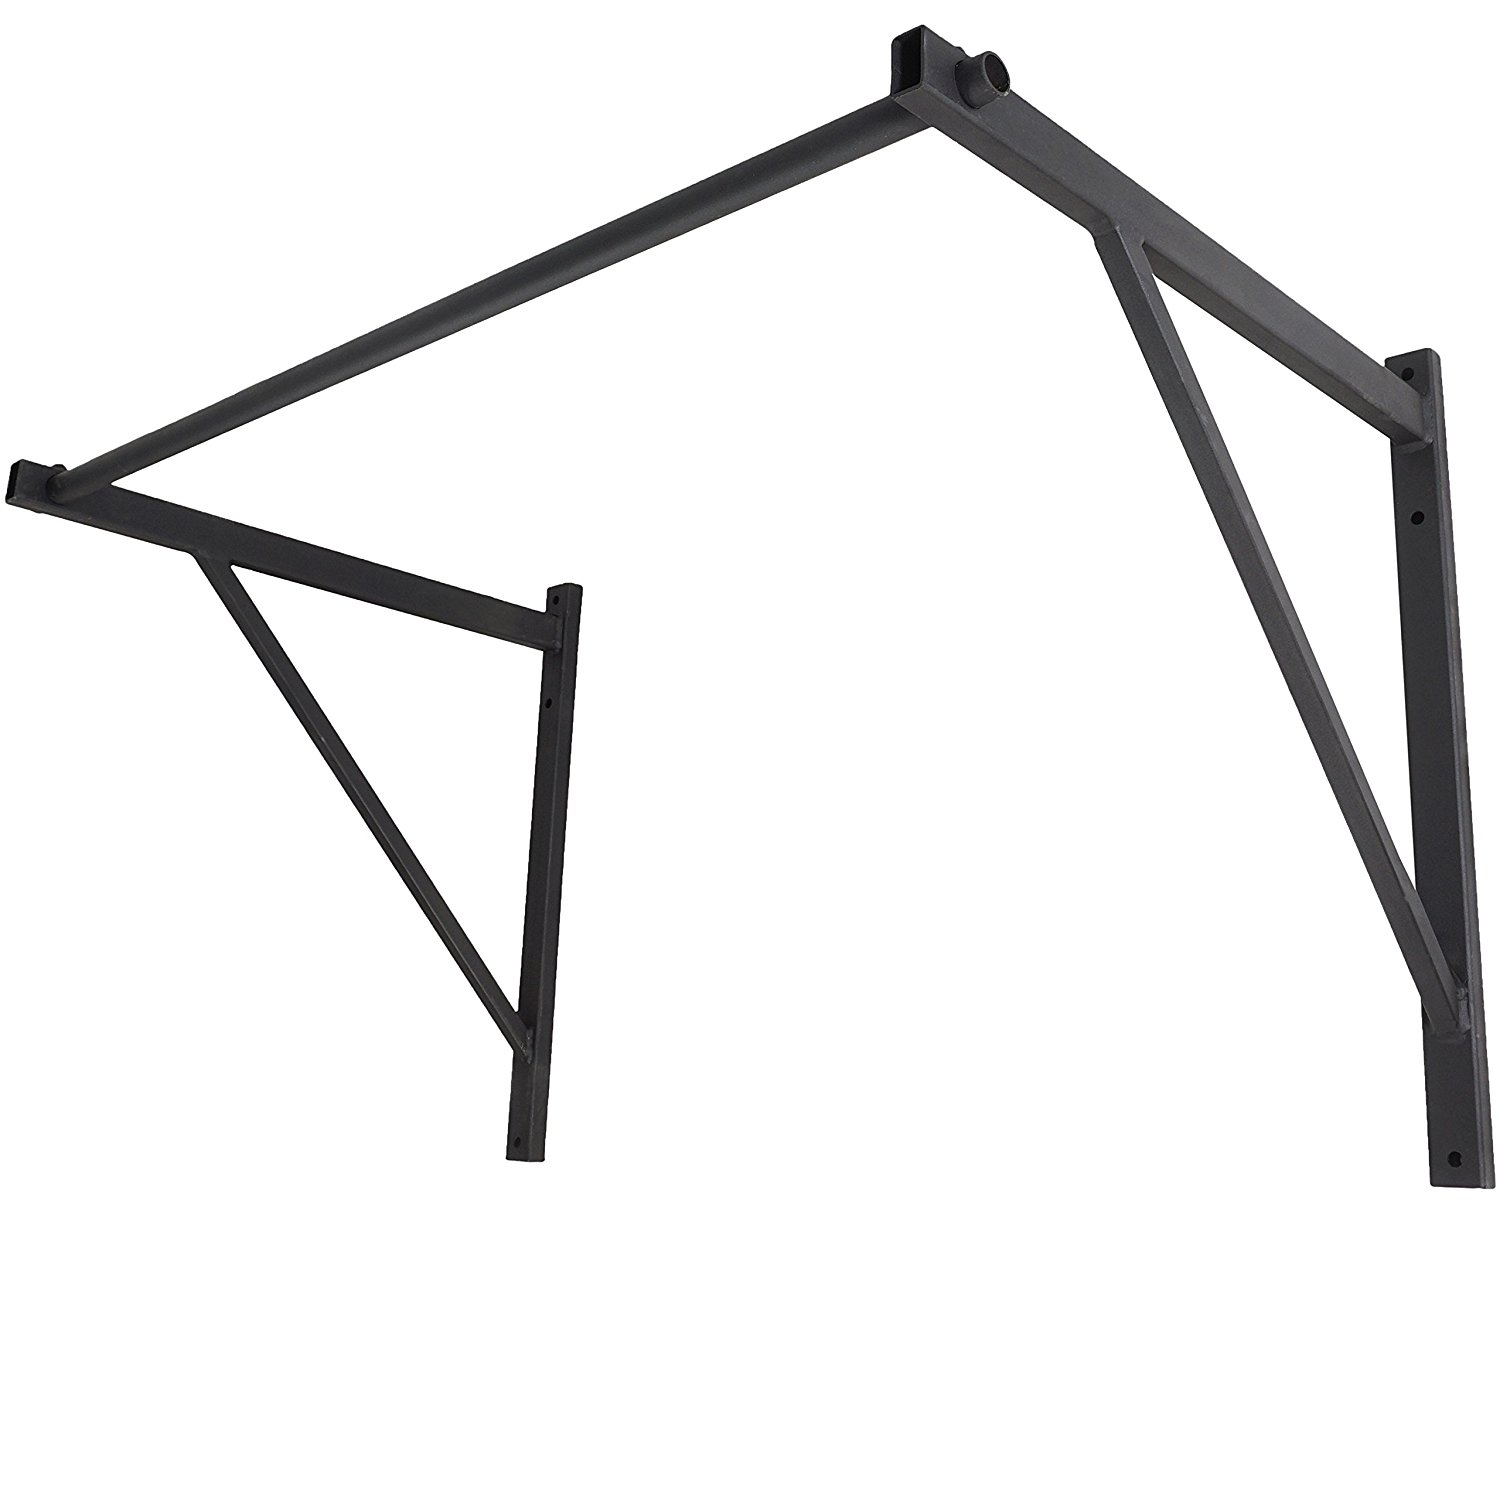 Image of: Titan Fitness Wall Mounted Pull Up Bar Review Slant